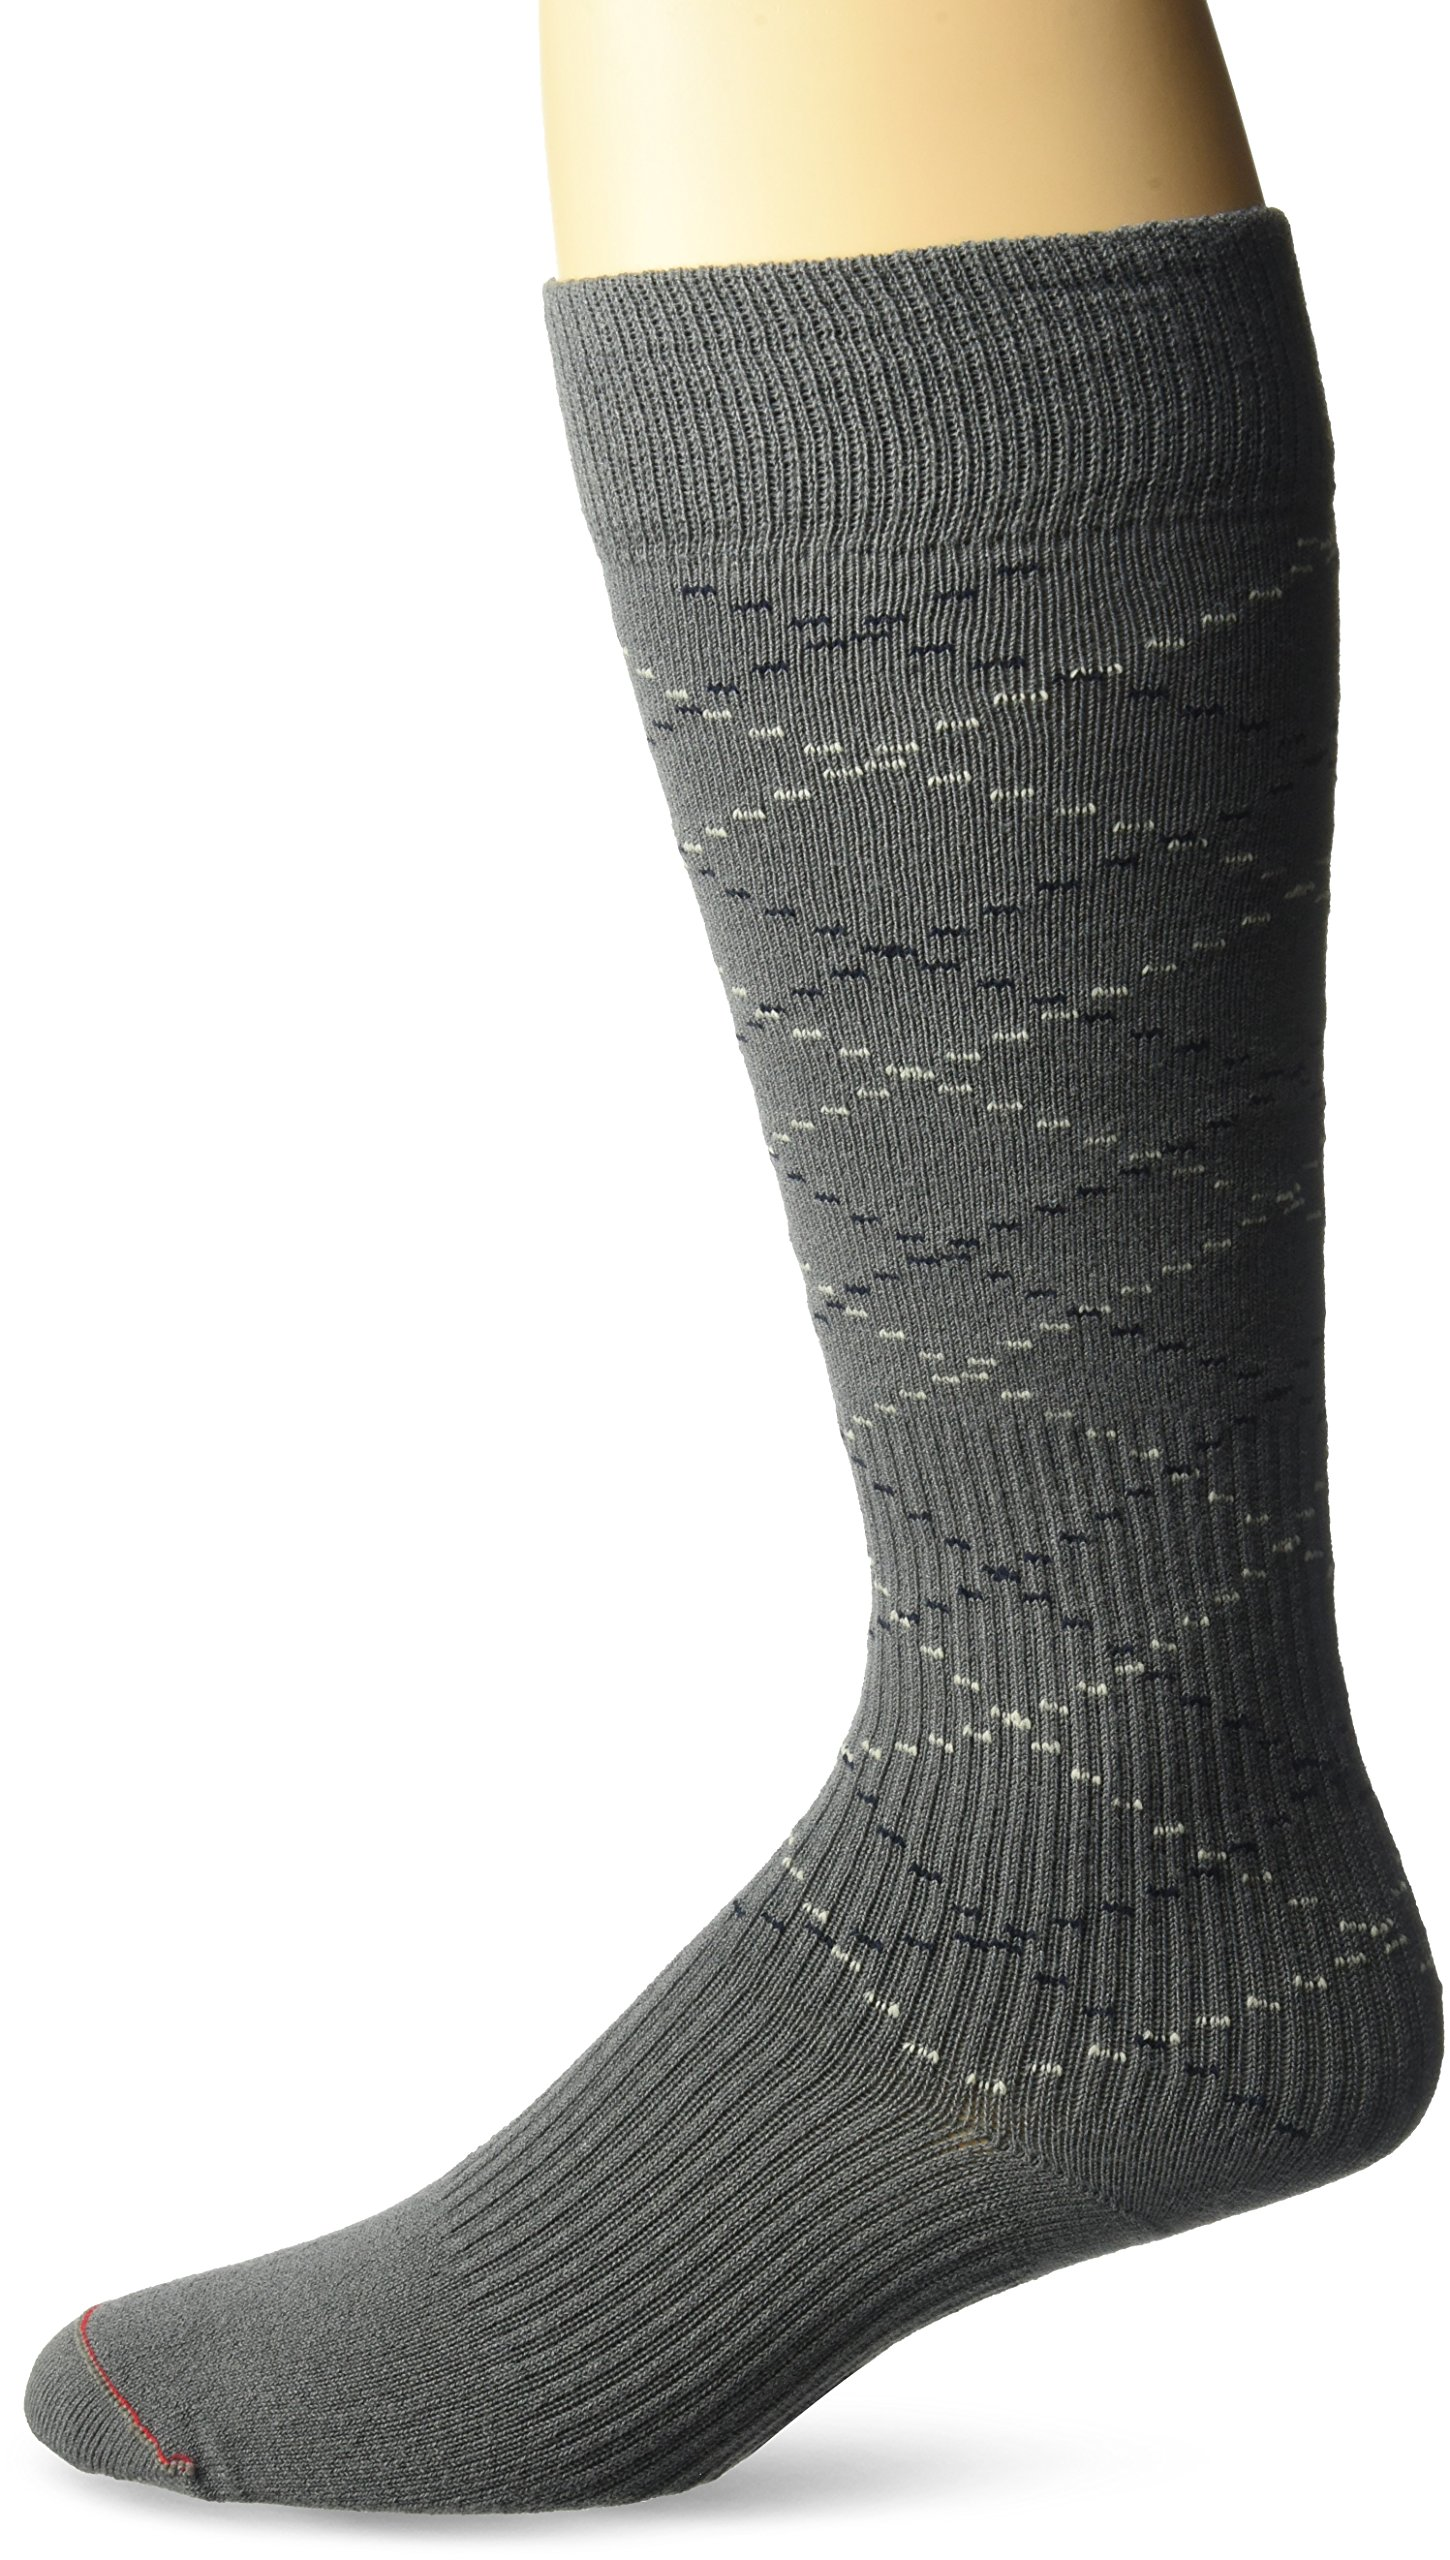 Travelsox Odissey Flight OTC Support Compression Travel Recovery Socks,TS5000, Grey, Large